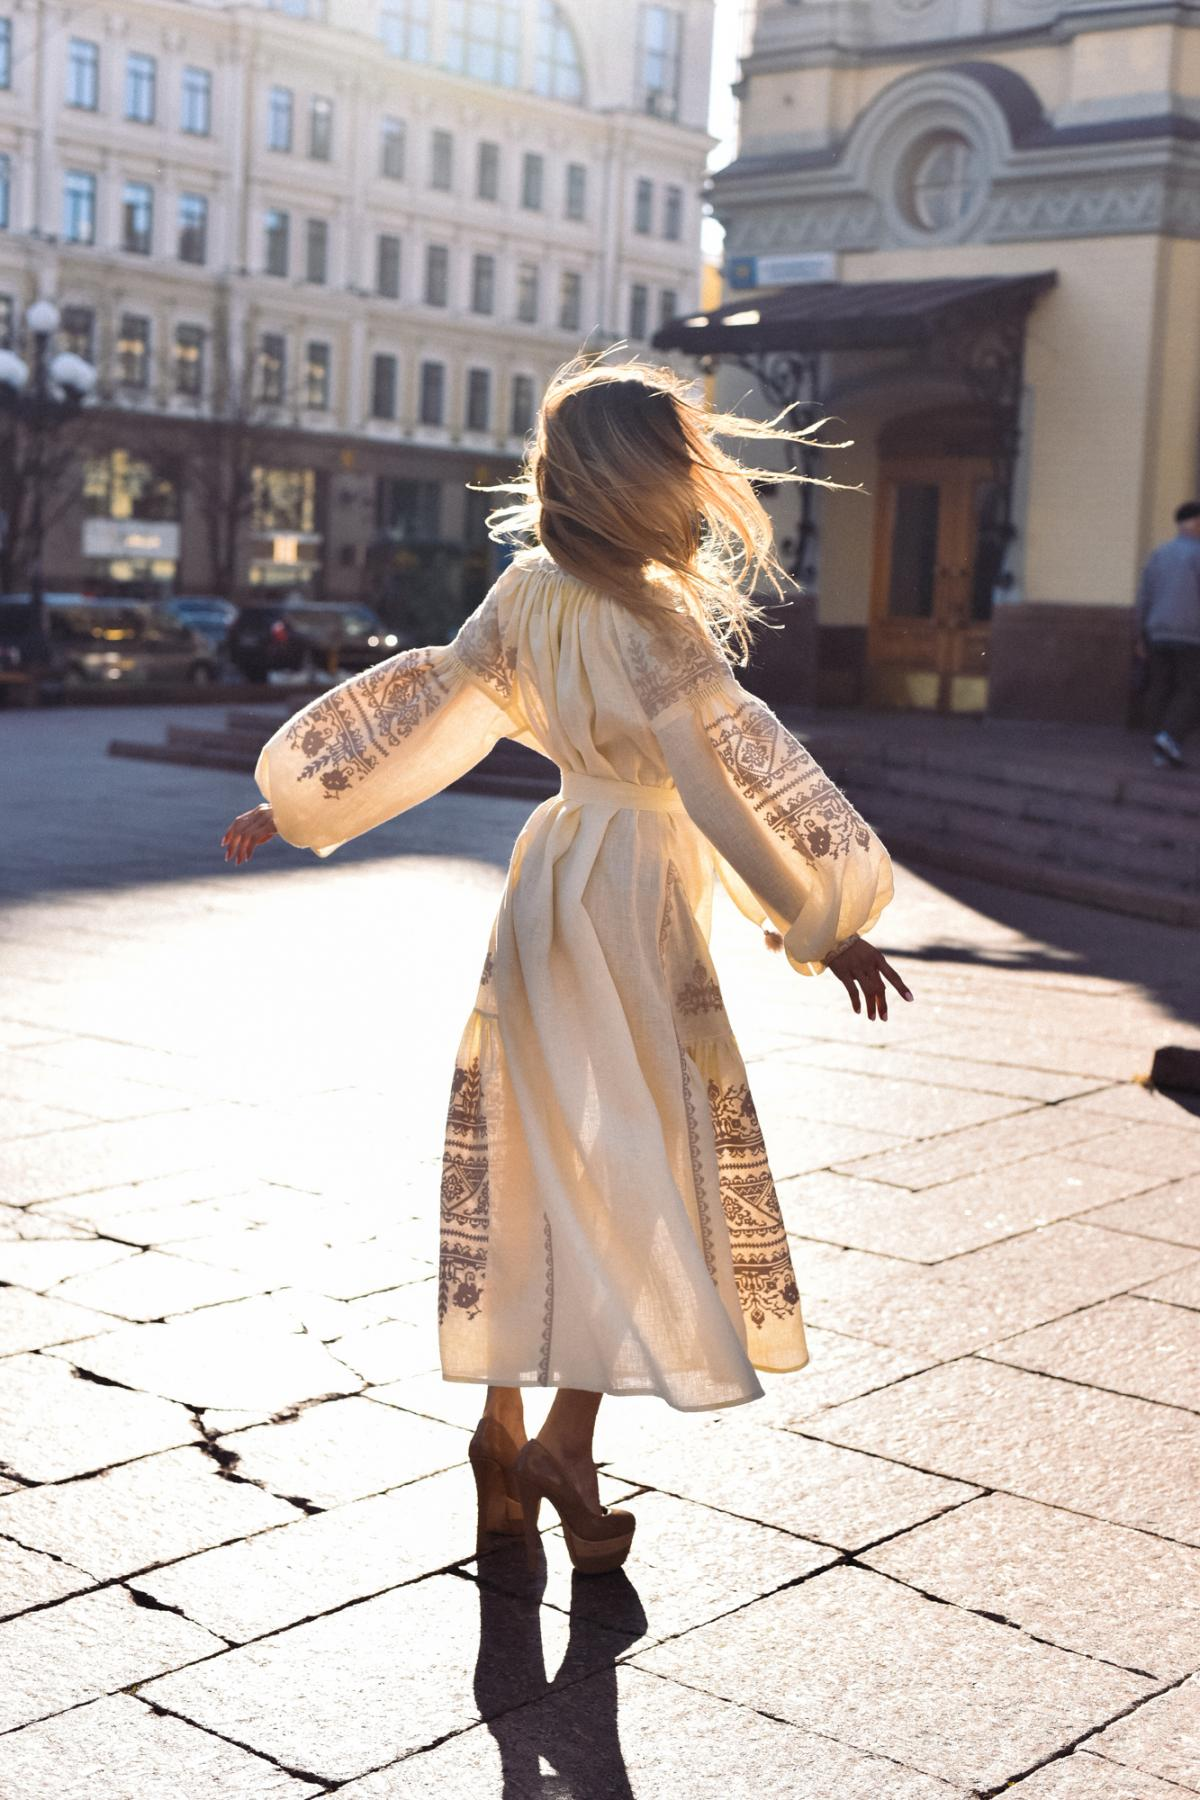 Long embroidered  beige dress with stylish embroidery,  Limited Edition Embroidered Dress. Photo №3. | Narodnyi dim Ukraine